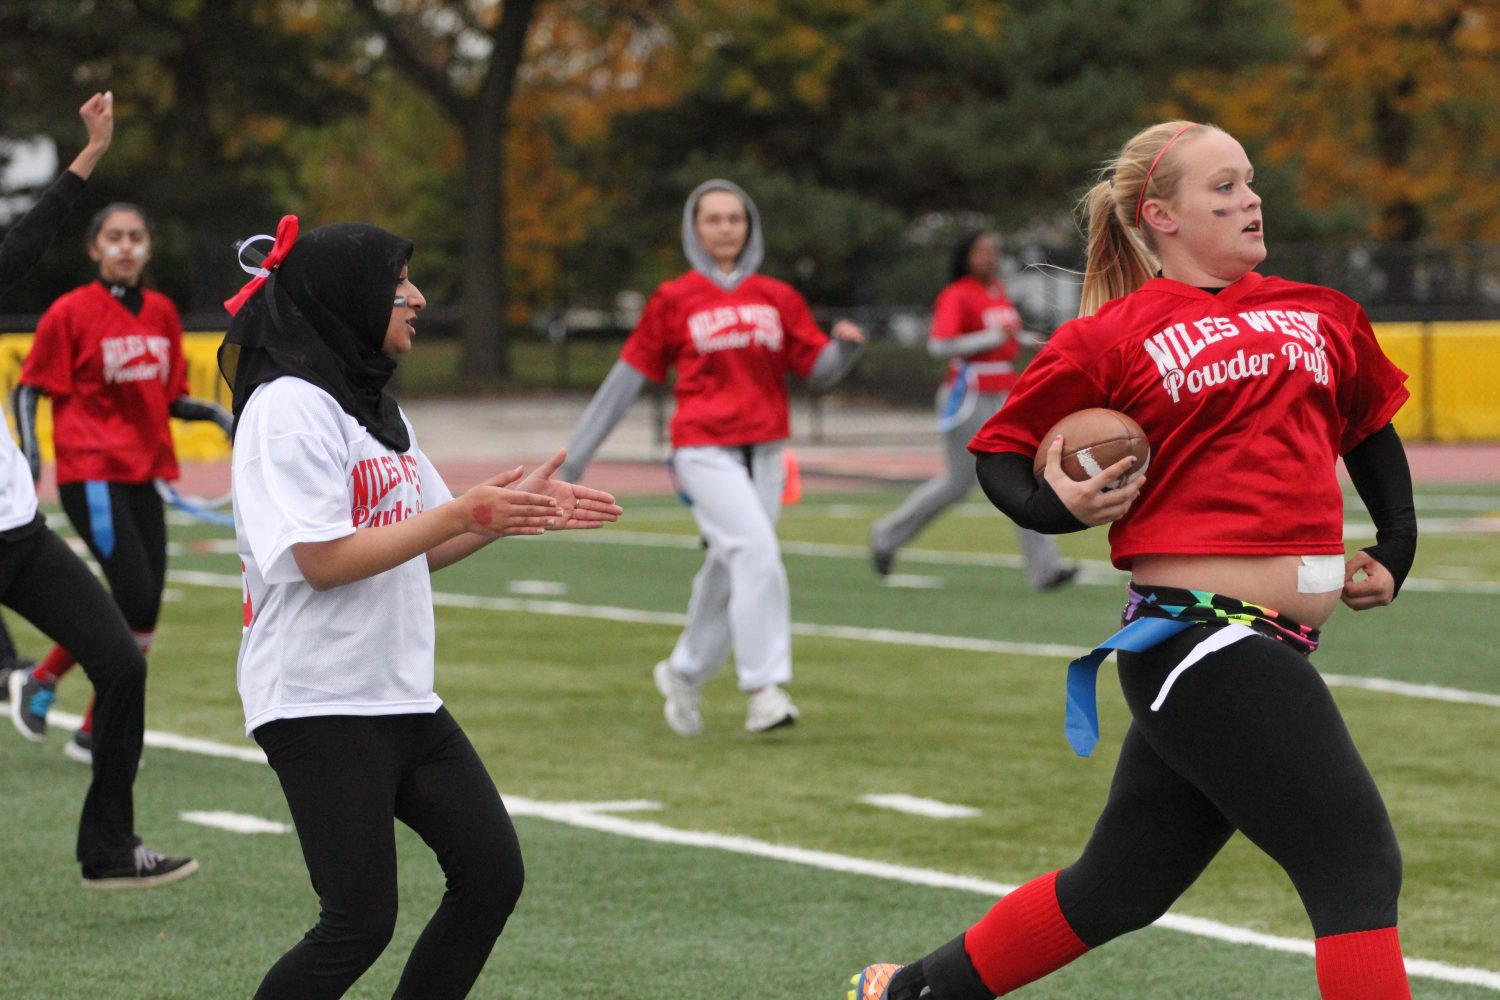 Niles West's Annual Powder Puff Game to Take Place